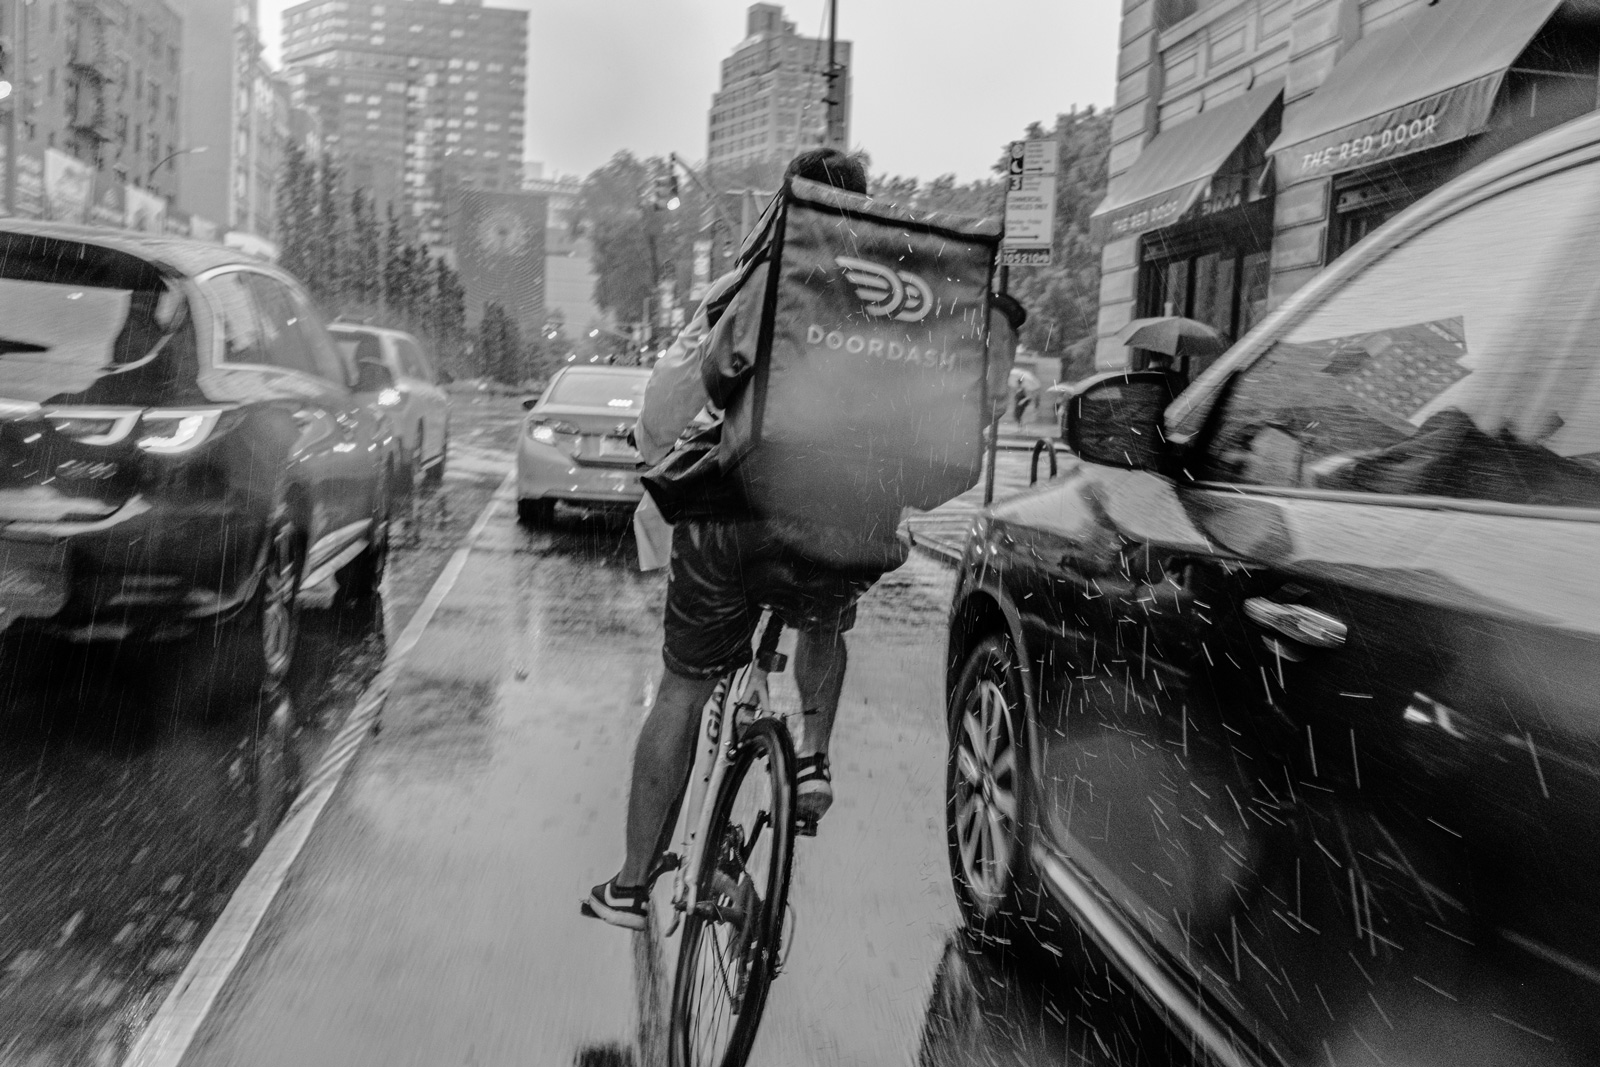 Diego Rodriguez, twenty-three, delivering a food order to a customer in Manhattan, September 2, 2019